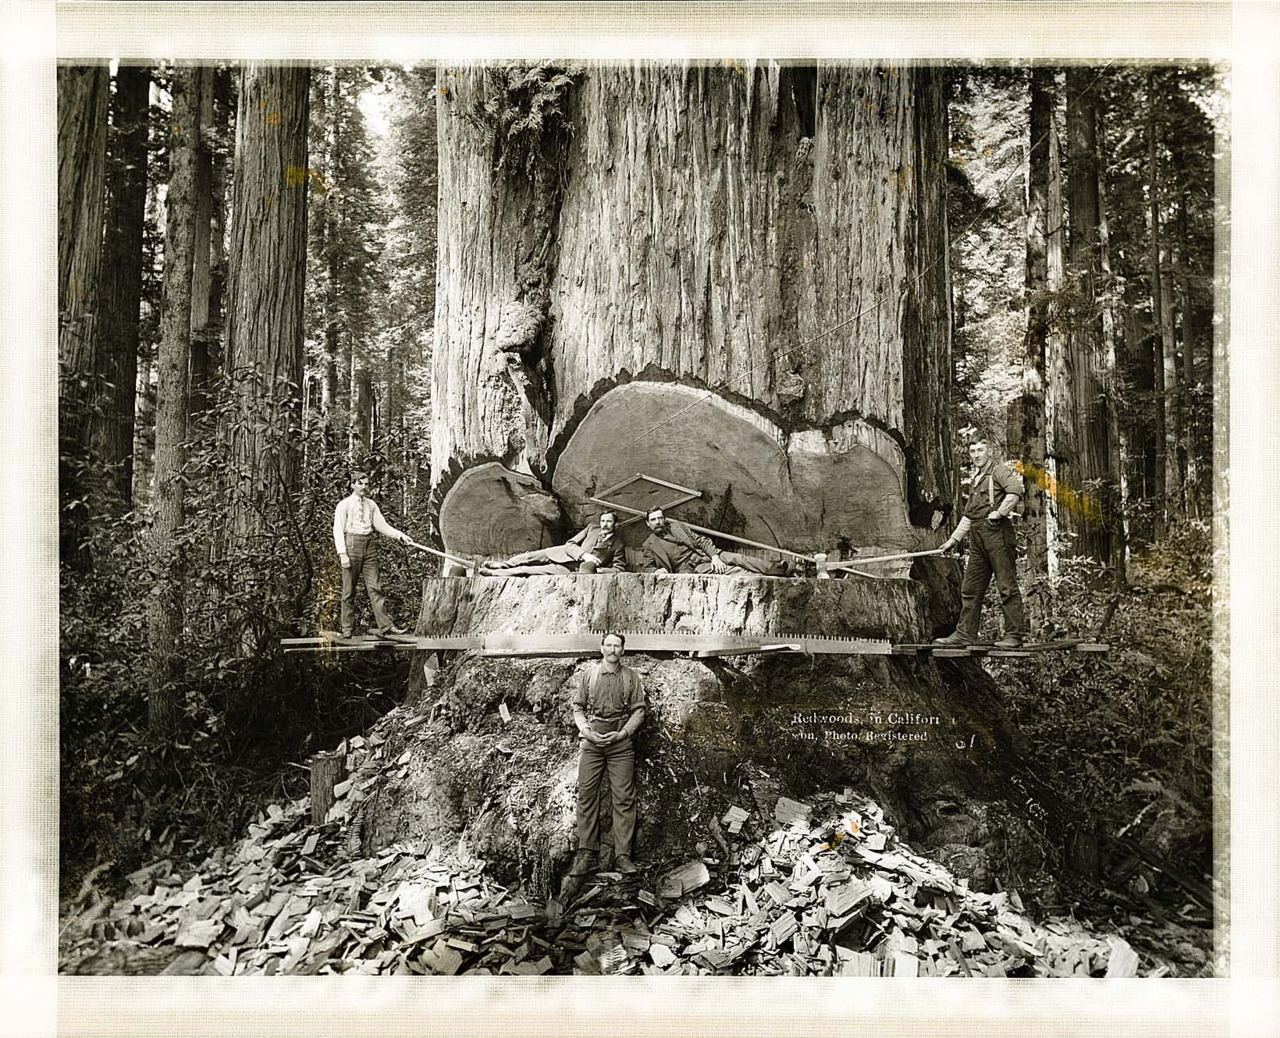 """Redwoods in California. A tragic mistake, indeed, and a reminder that not all things should be considered, """"here for the taking"""". As we look back, there is much to be learned from our previous oversights. But even still, the resilience and hardworking nature of those before us is so impressive to me: I find myself in awe at photos like this, stuck somewhere between admiration, and disappointment."""